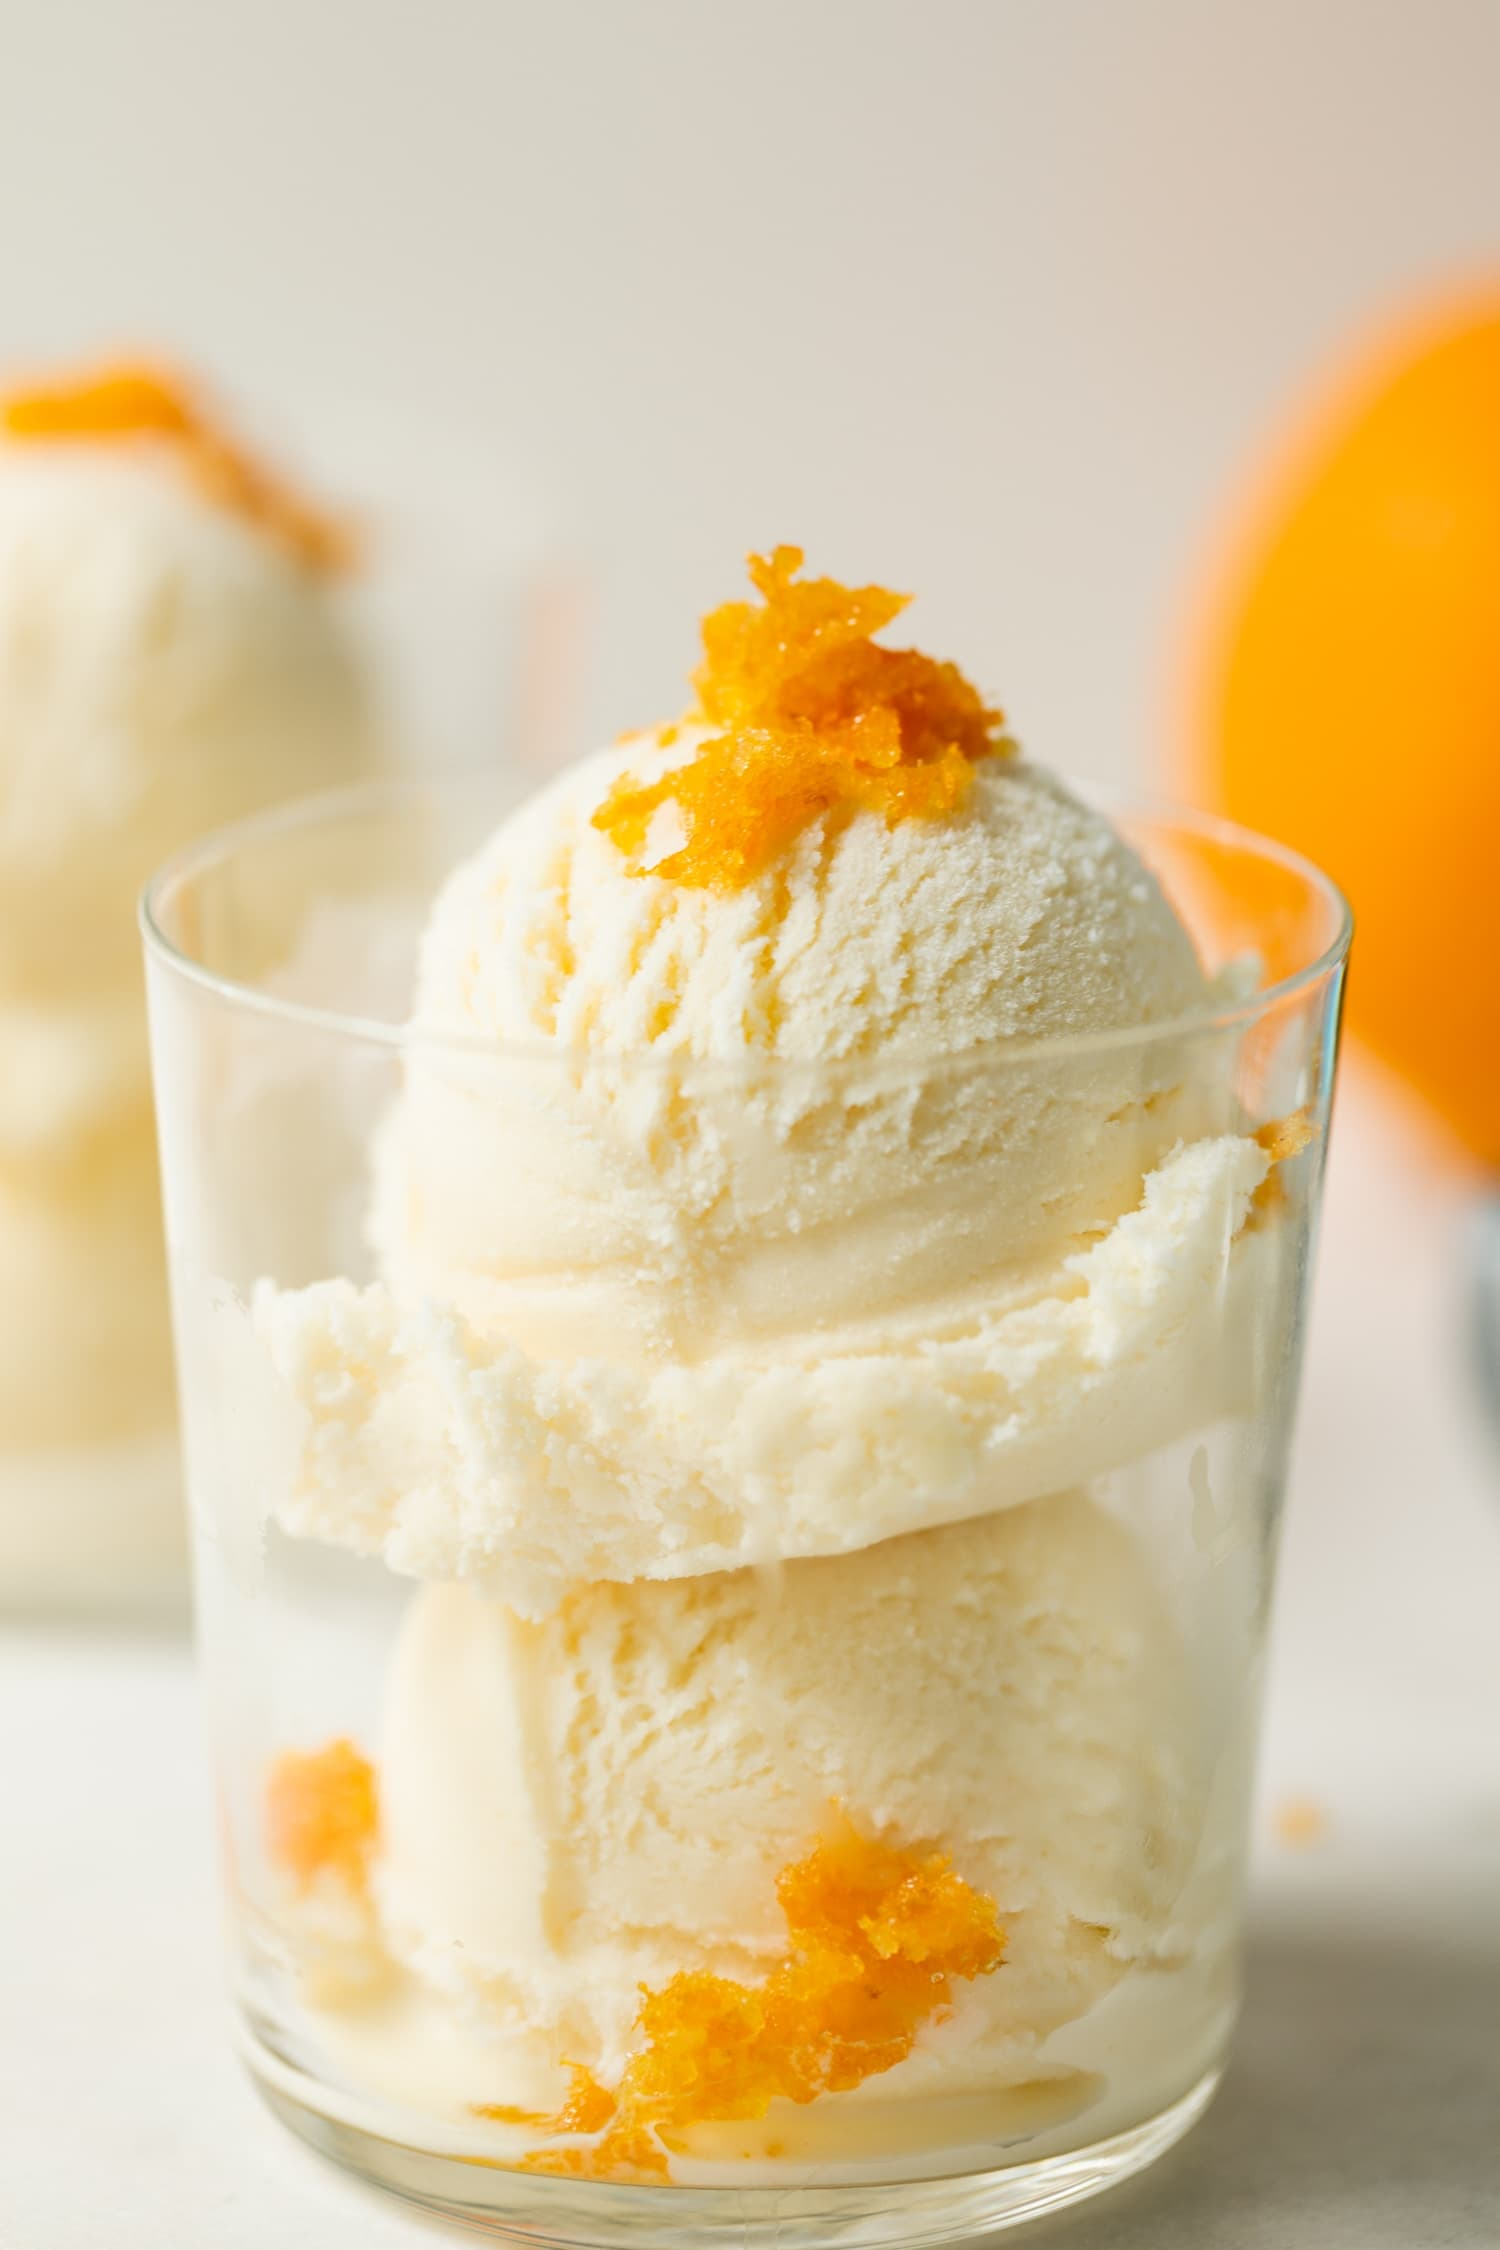 Mimosa ice cream speckled with orange zest pieces in a clear glass on marble surface with second ice cream glass and orange in background